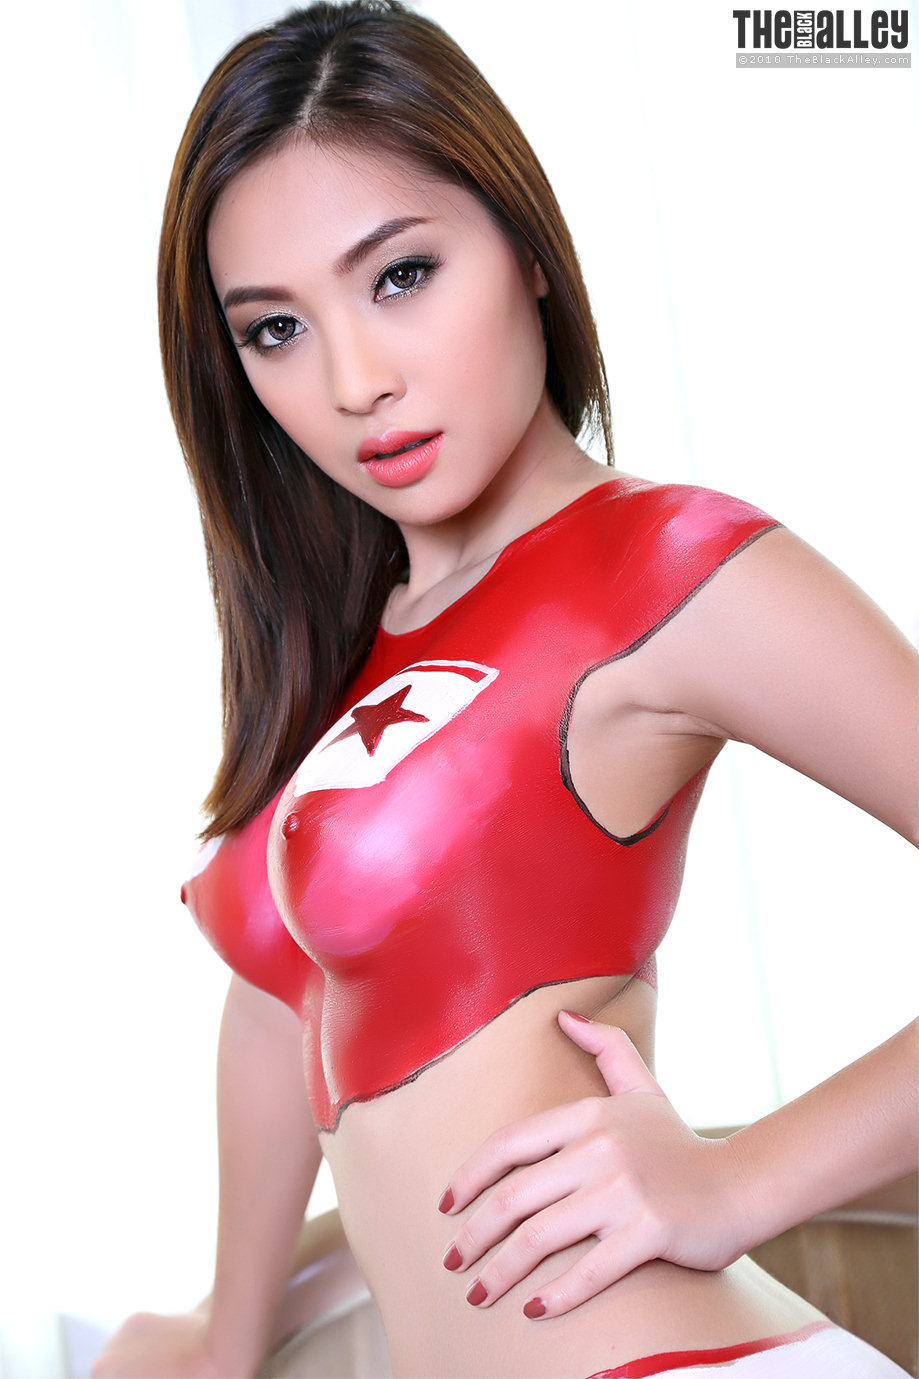 hot girls body paint